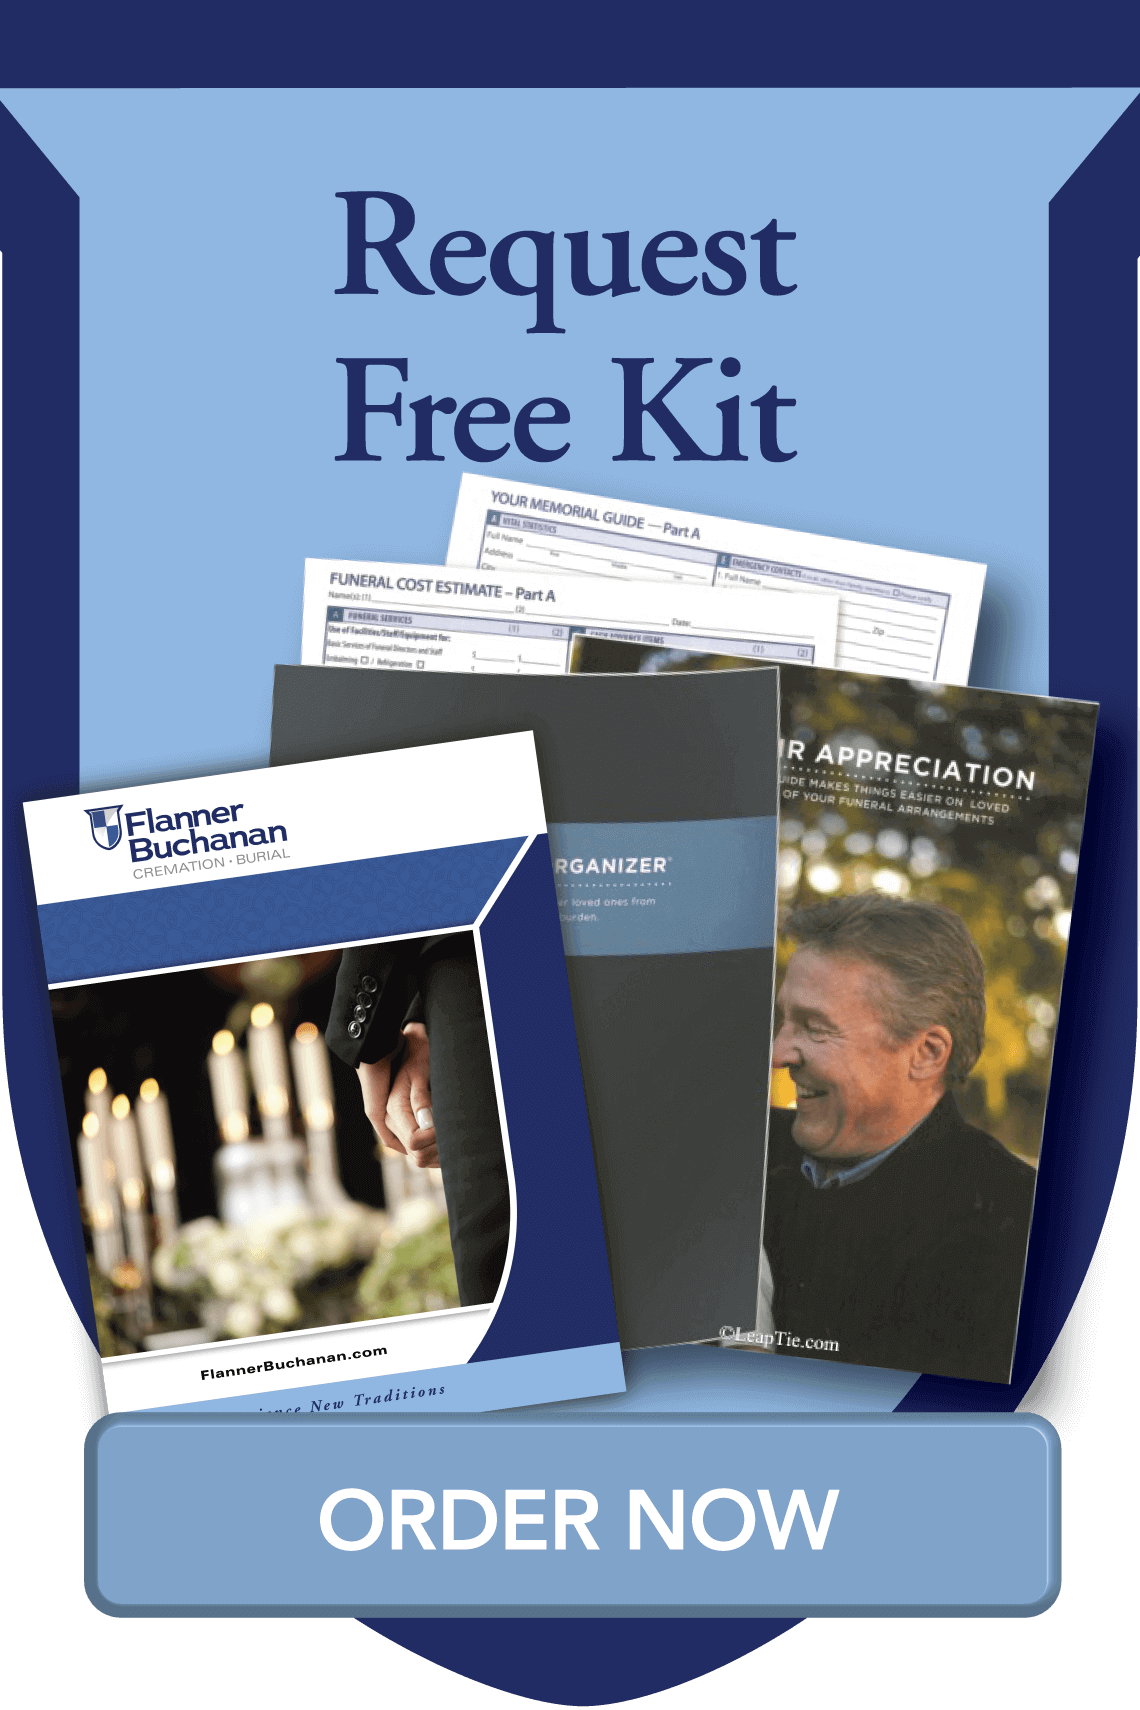 Request a Free Kit